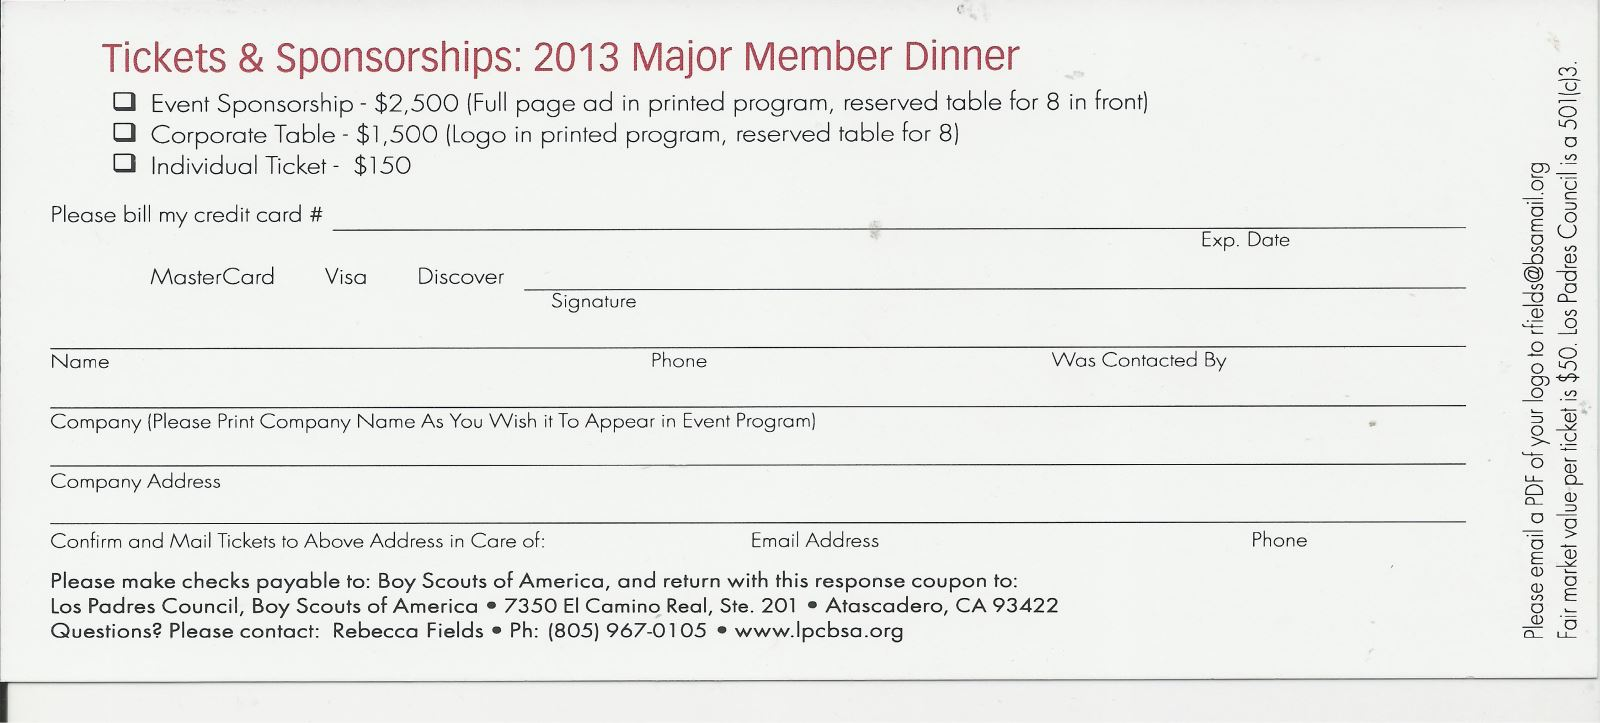 2013 Major Member Dinner Reservation Stub